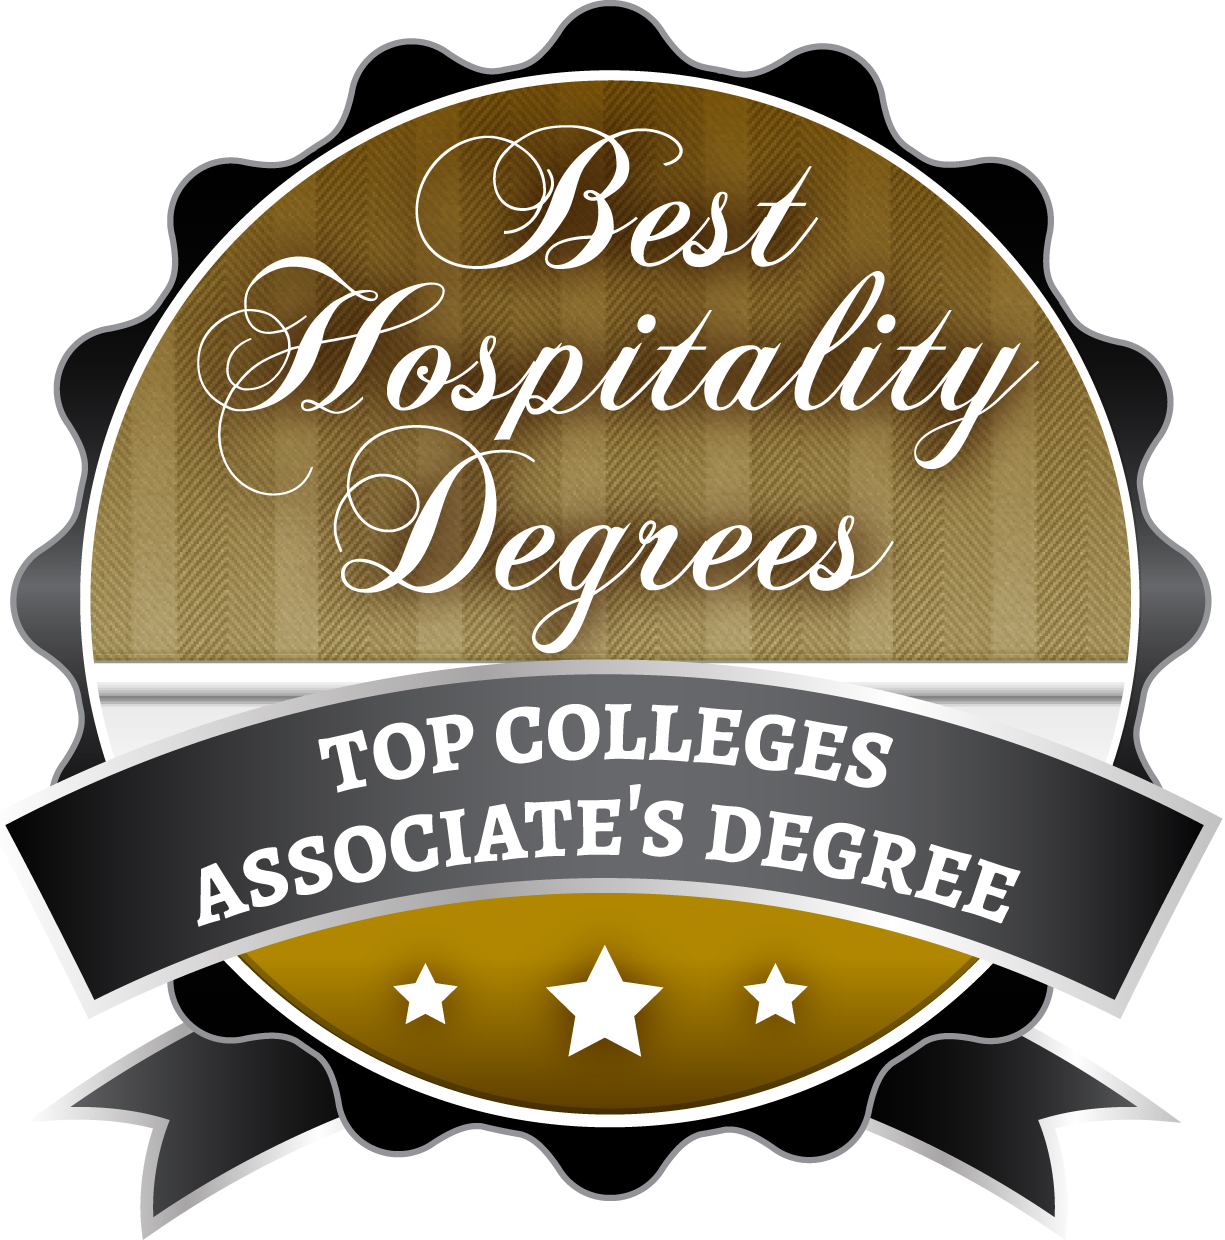 associate degree online The online hospitality management program at monroe with an associate degree in hospitality management, you'll be prepared for a range of positions in lodging, food and beverage, and the tourism industry.